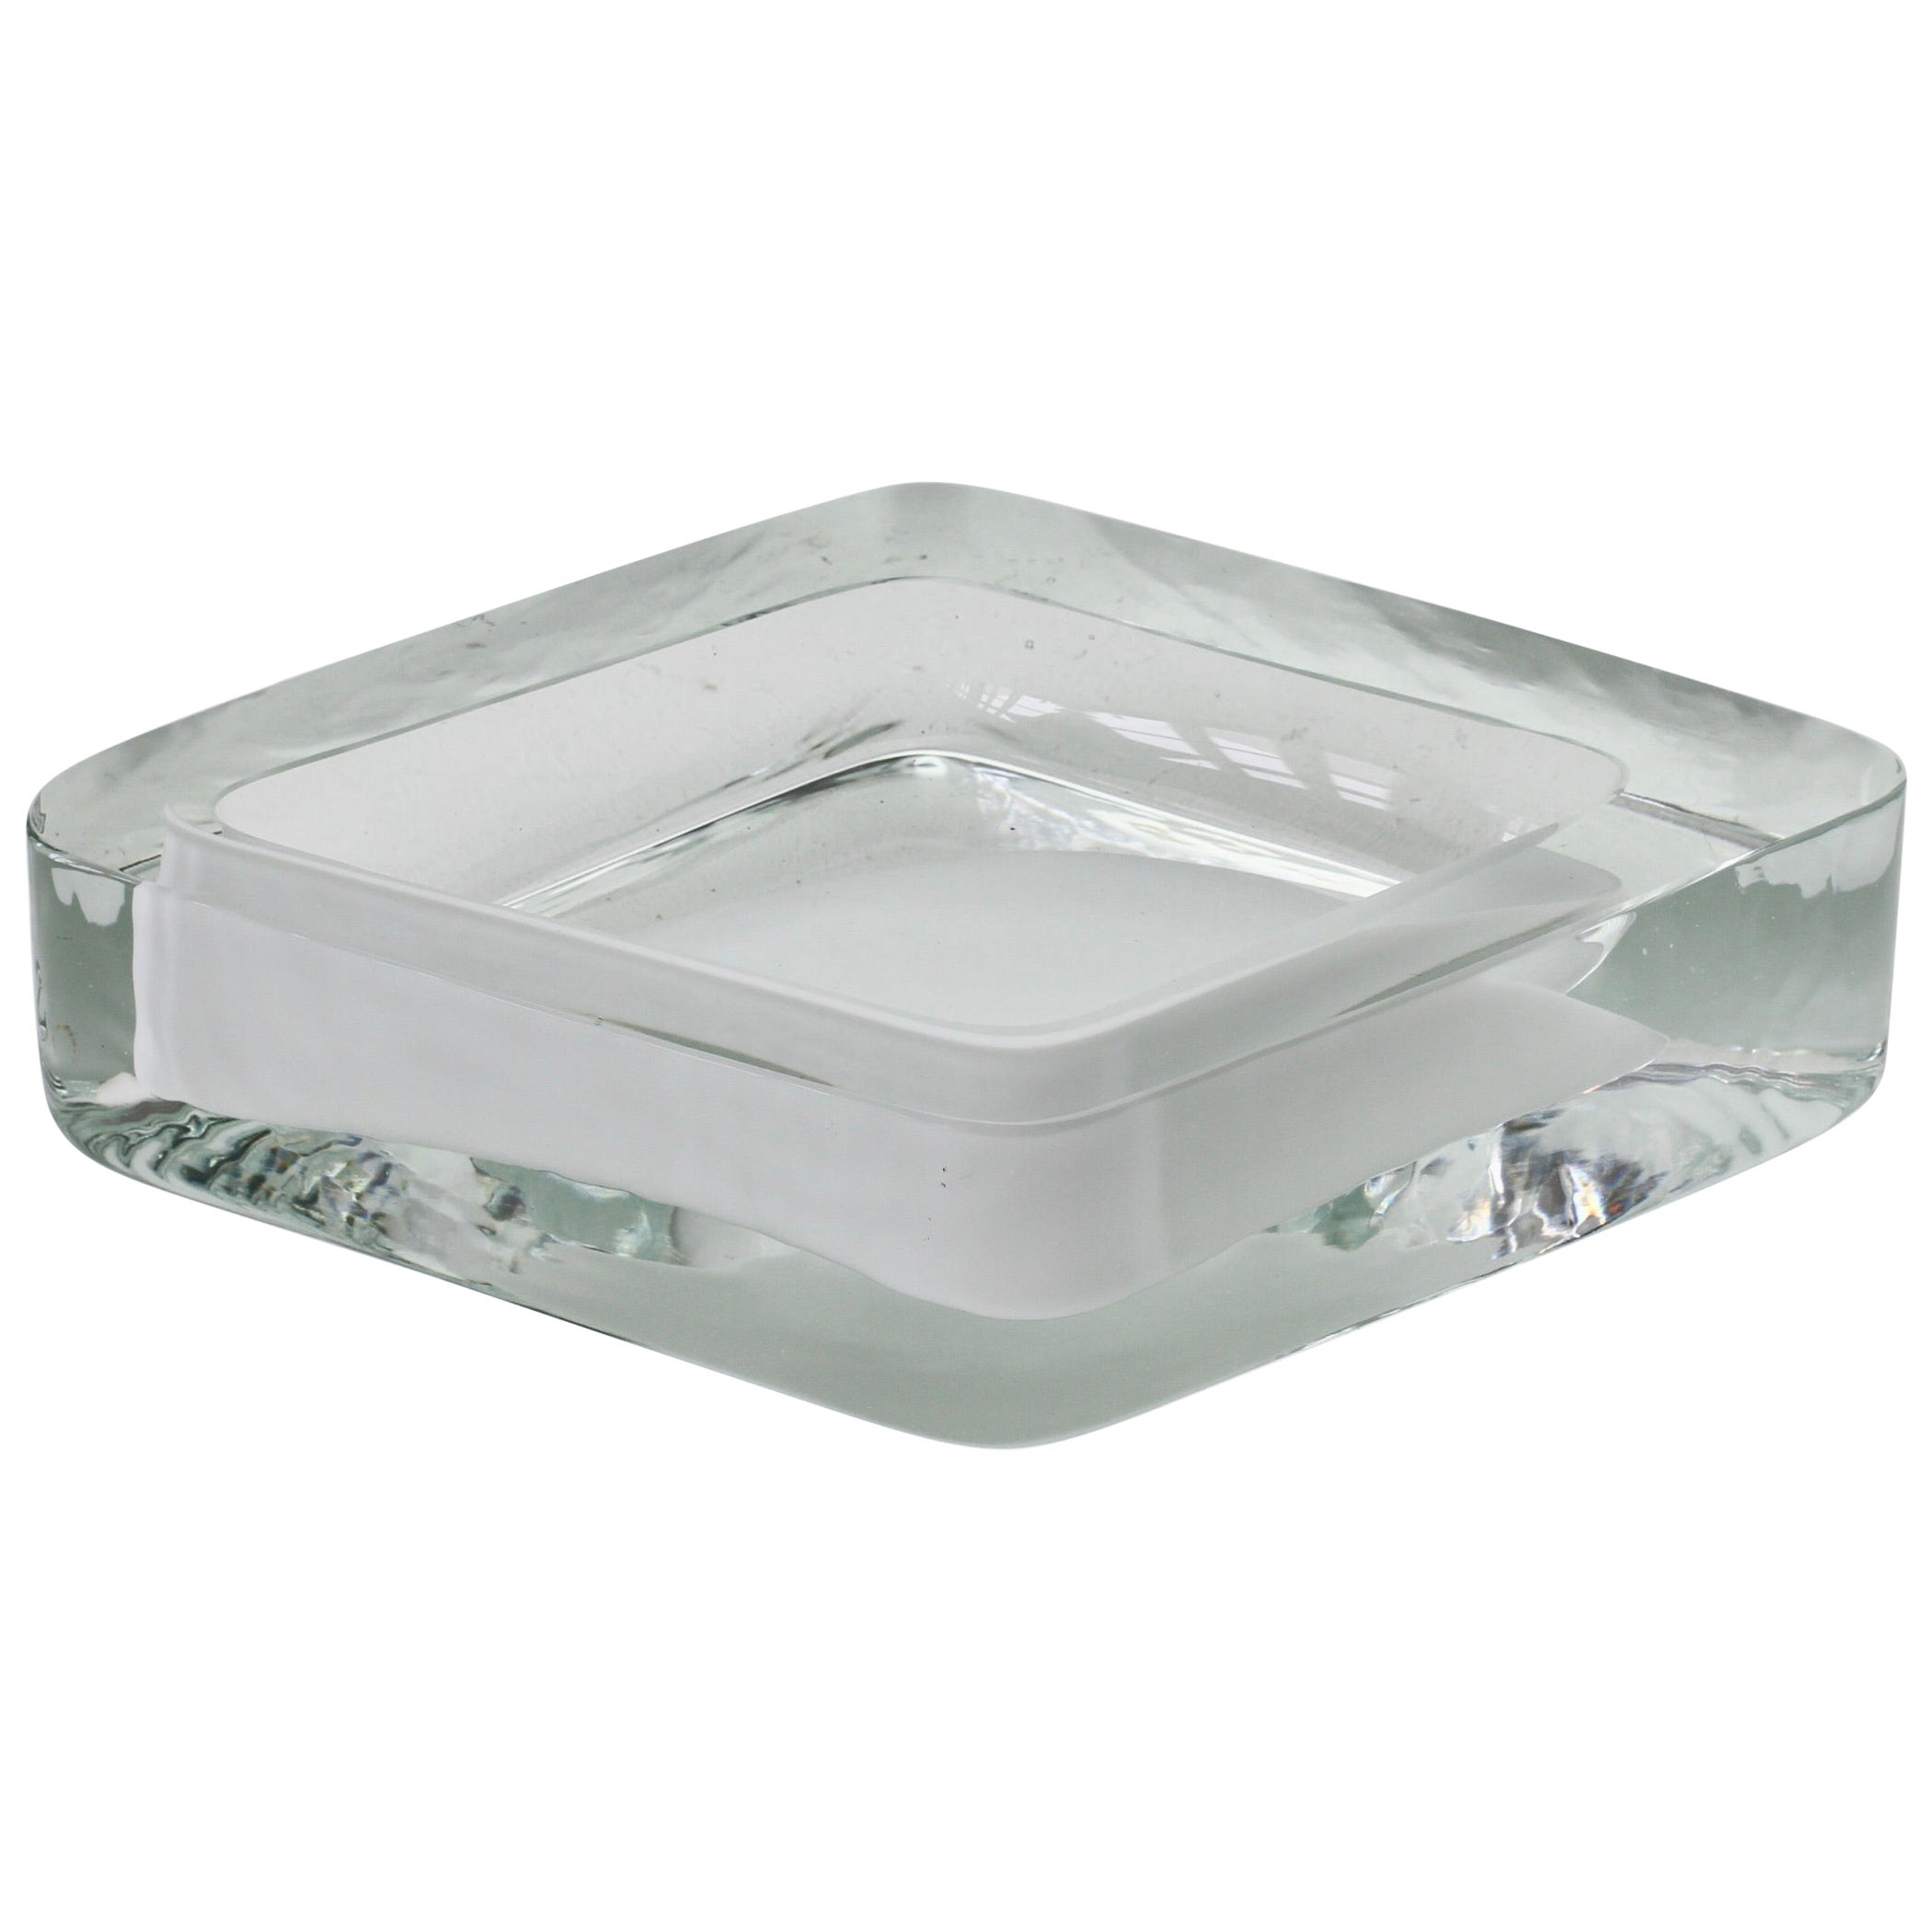 Large Cenedese Italian Rhombus White and Clear Murano Glass Bowl, Dish, Ashtray